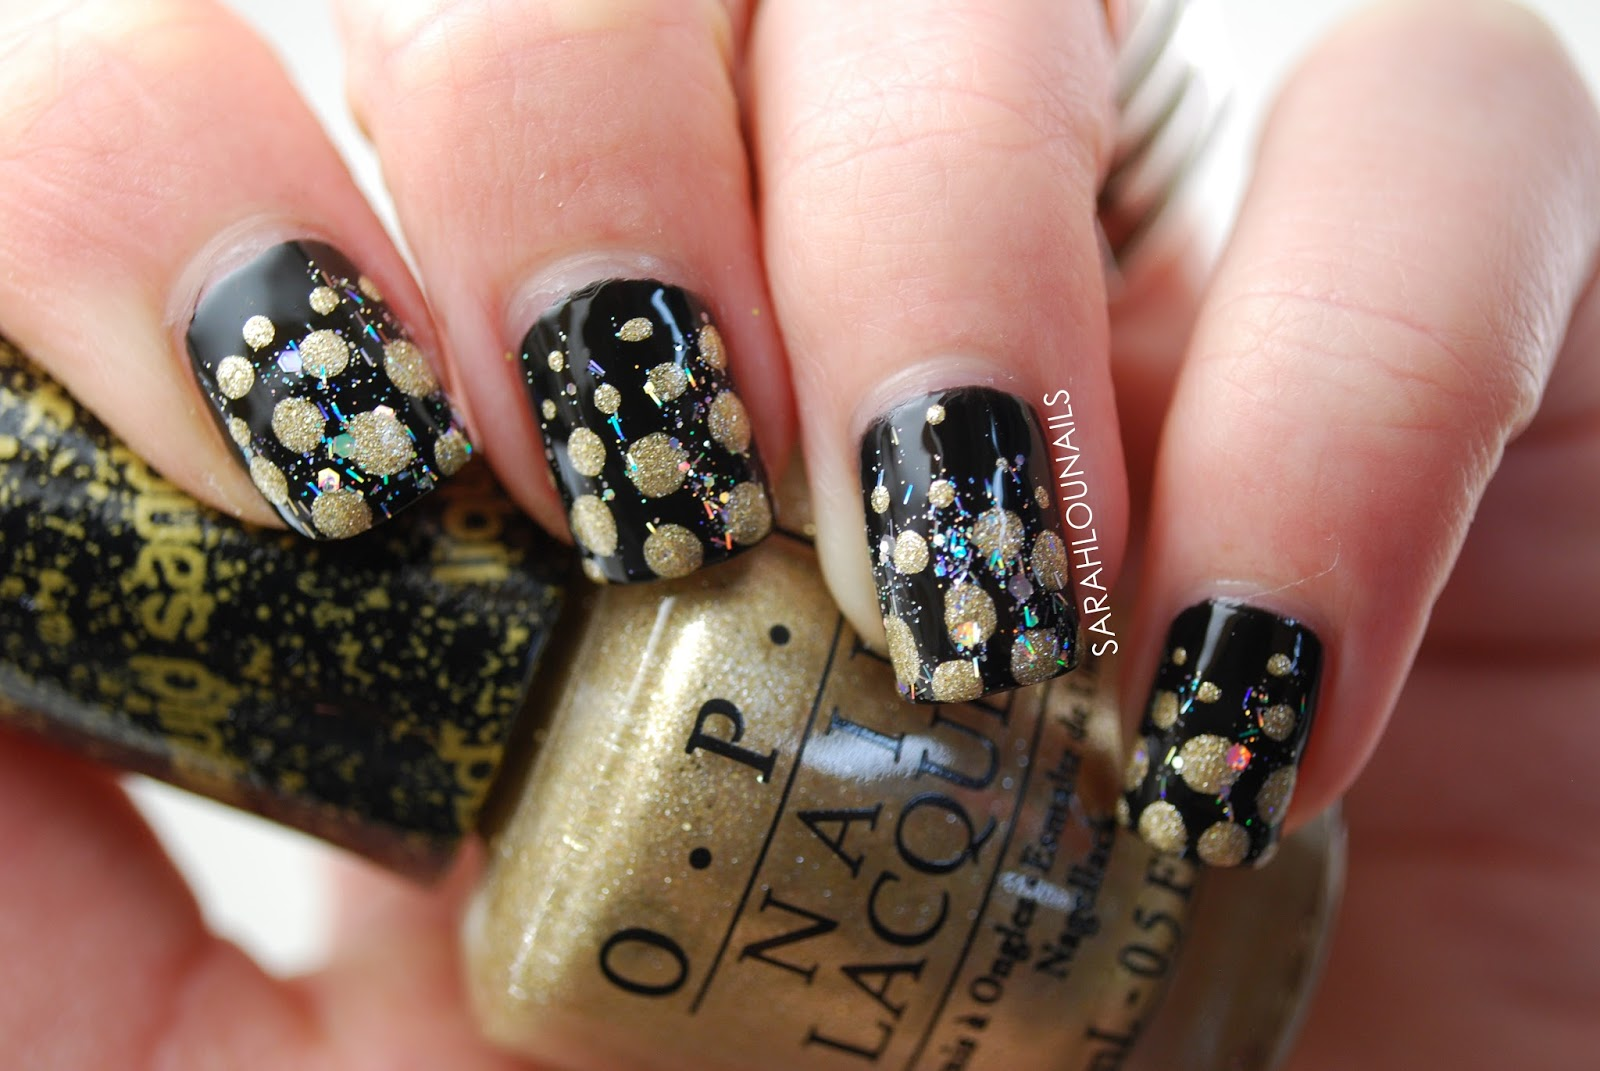 Sarah Lou Nails: New Years Eve Nails!